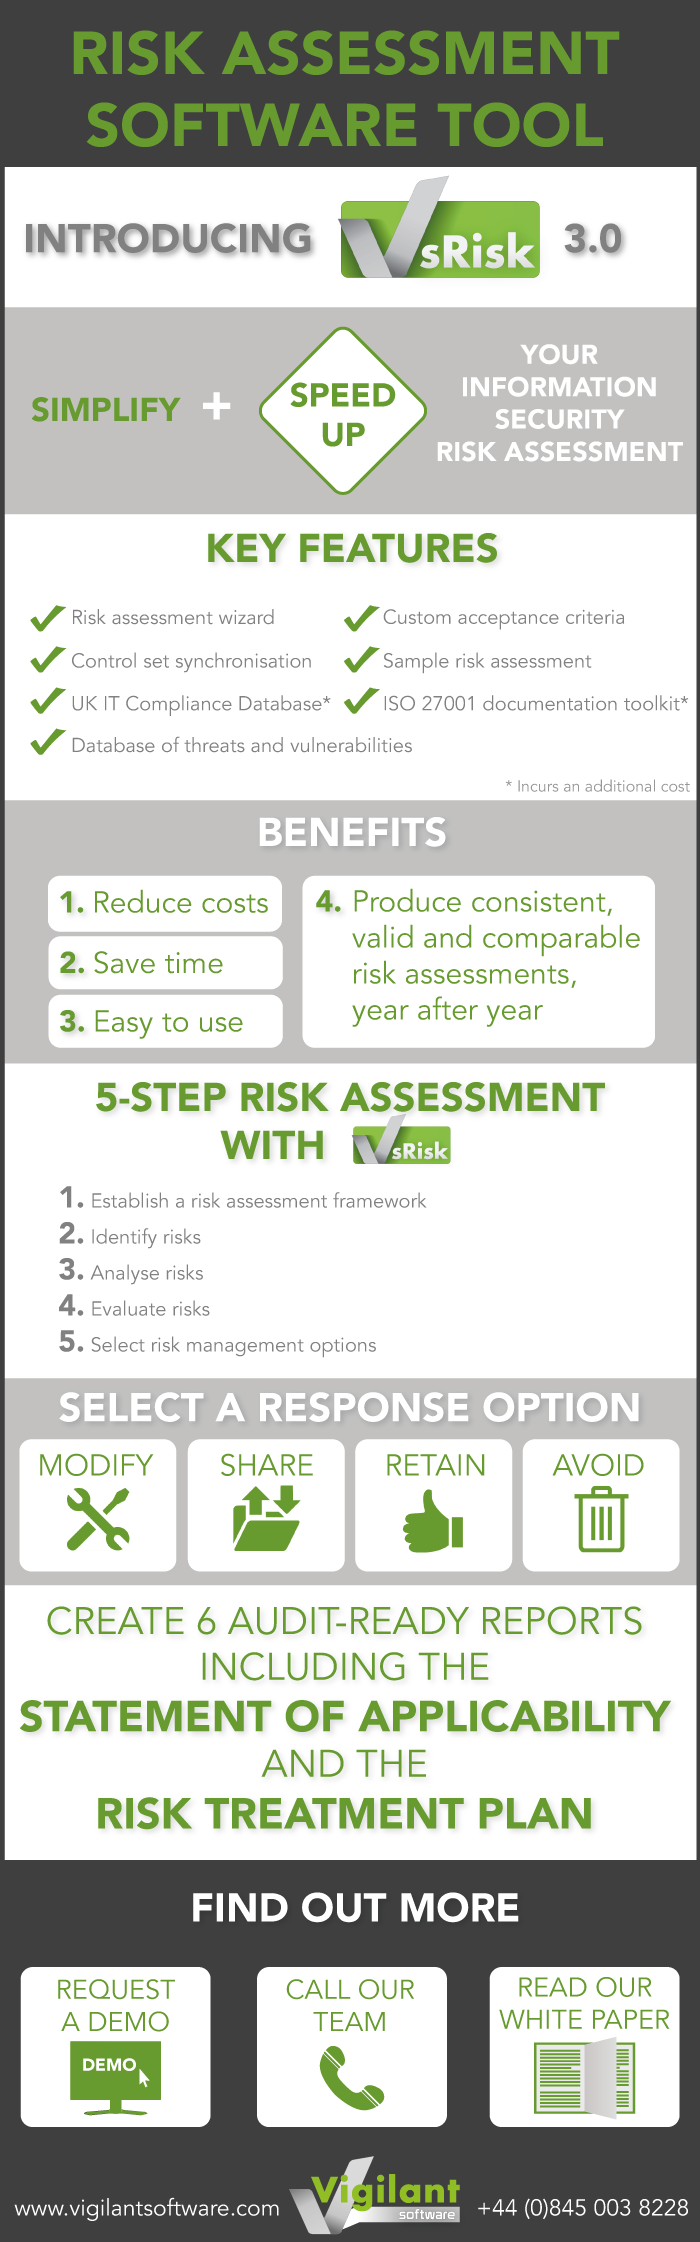 vsRisk™ 3.0: Risk assessment software tool